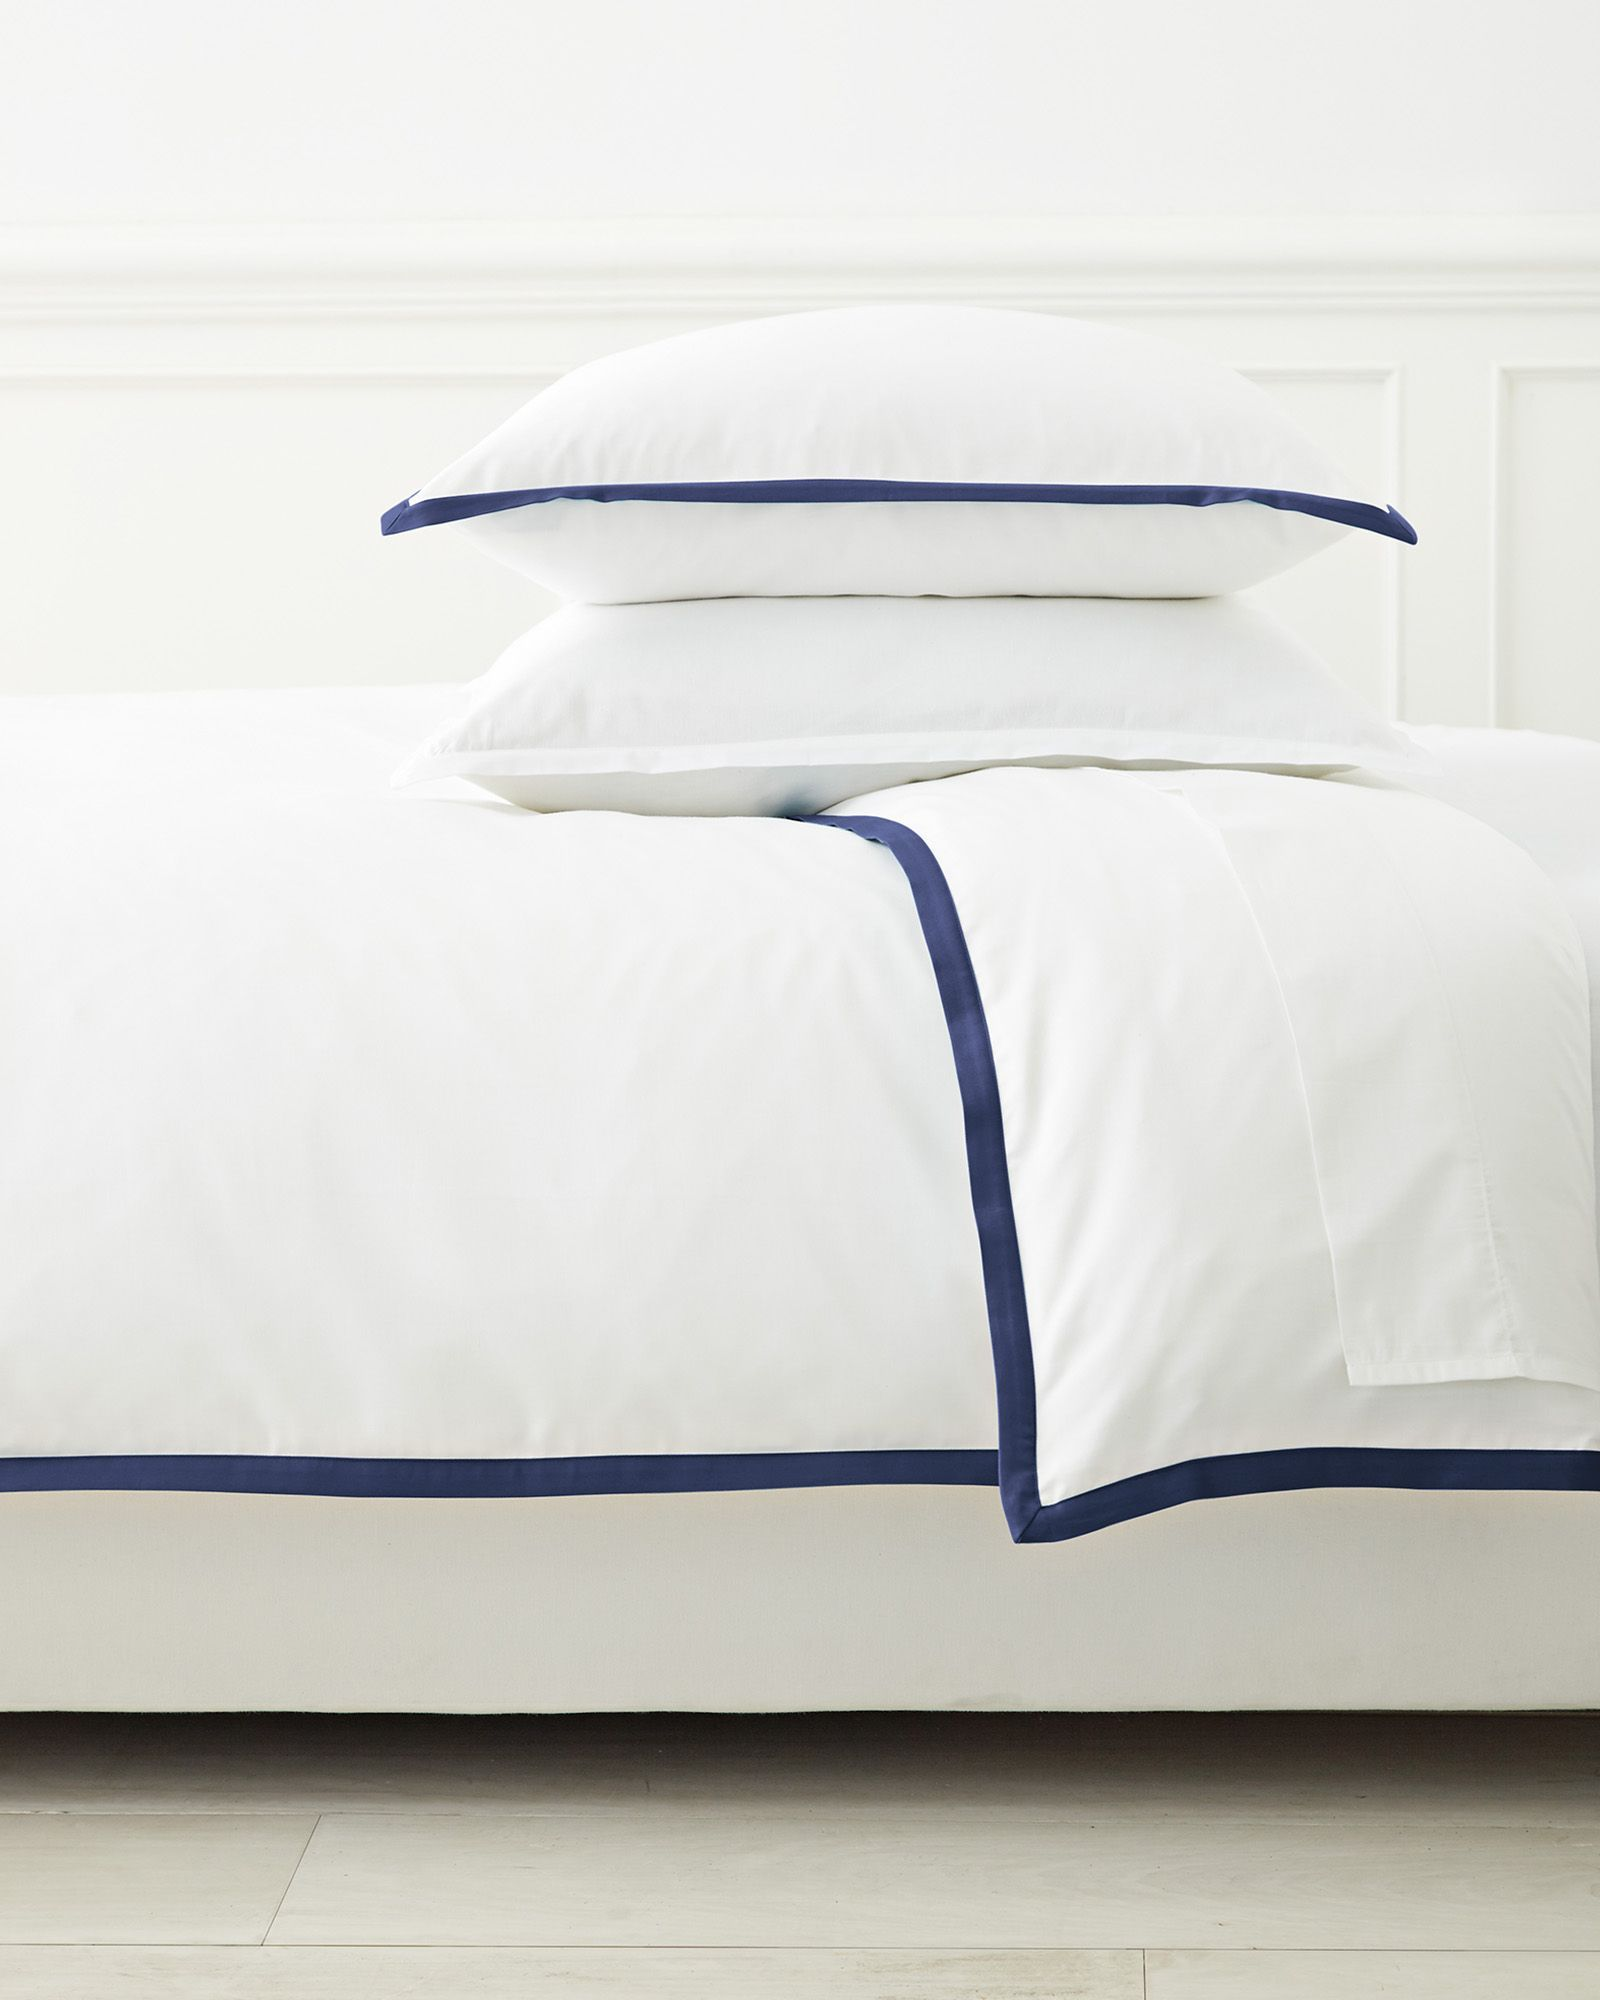 Classic White Duvet Cover With Navy Blue Border Trim Serena Lily Luxurybeddingnavy Luxury Bedding Bed Linens Luxury Luxury Duvet Covers White comforter with navy trim